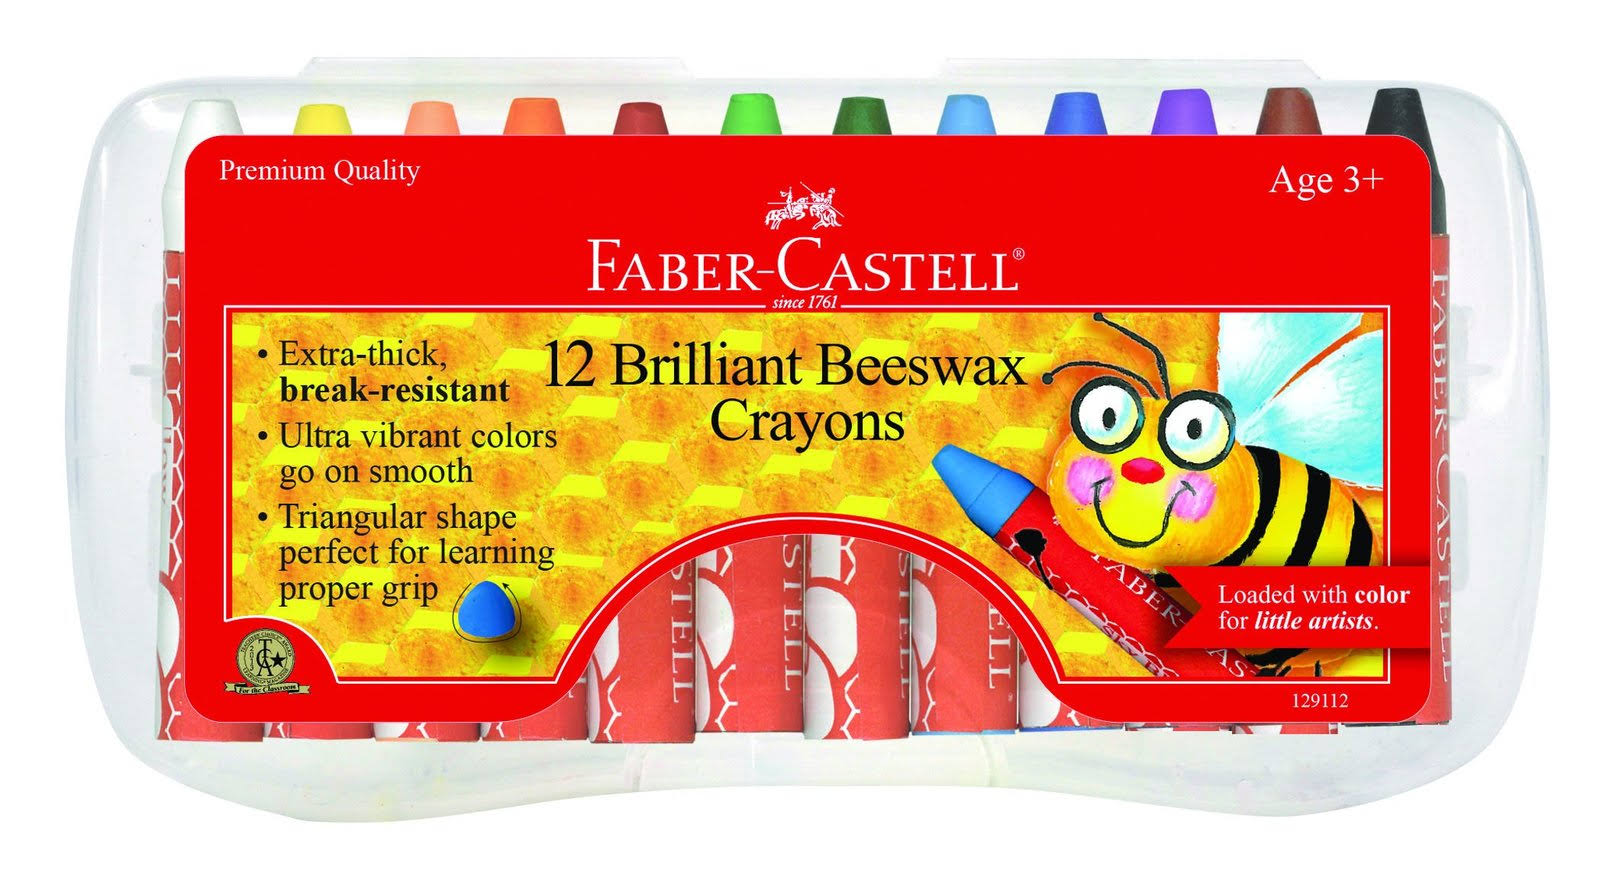 Faber Castell Crayons - 12 Count Brilliant Beeswax Crayons